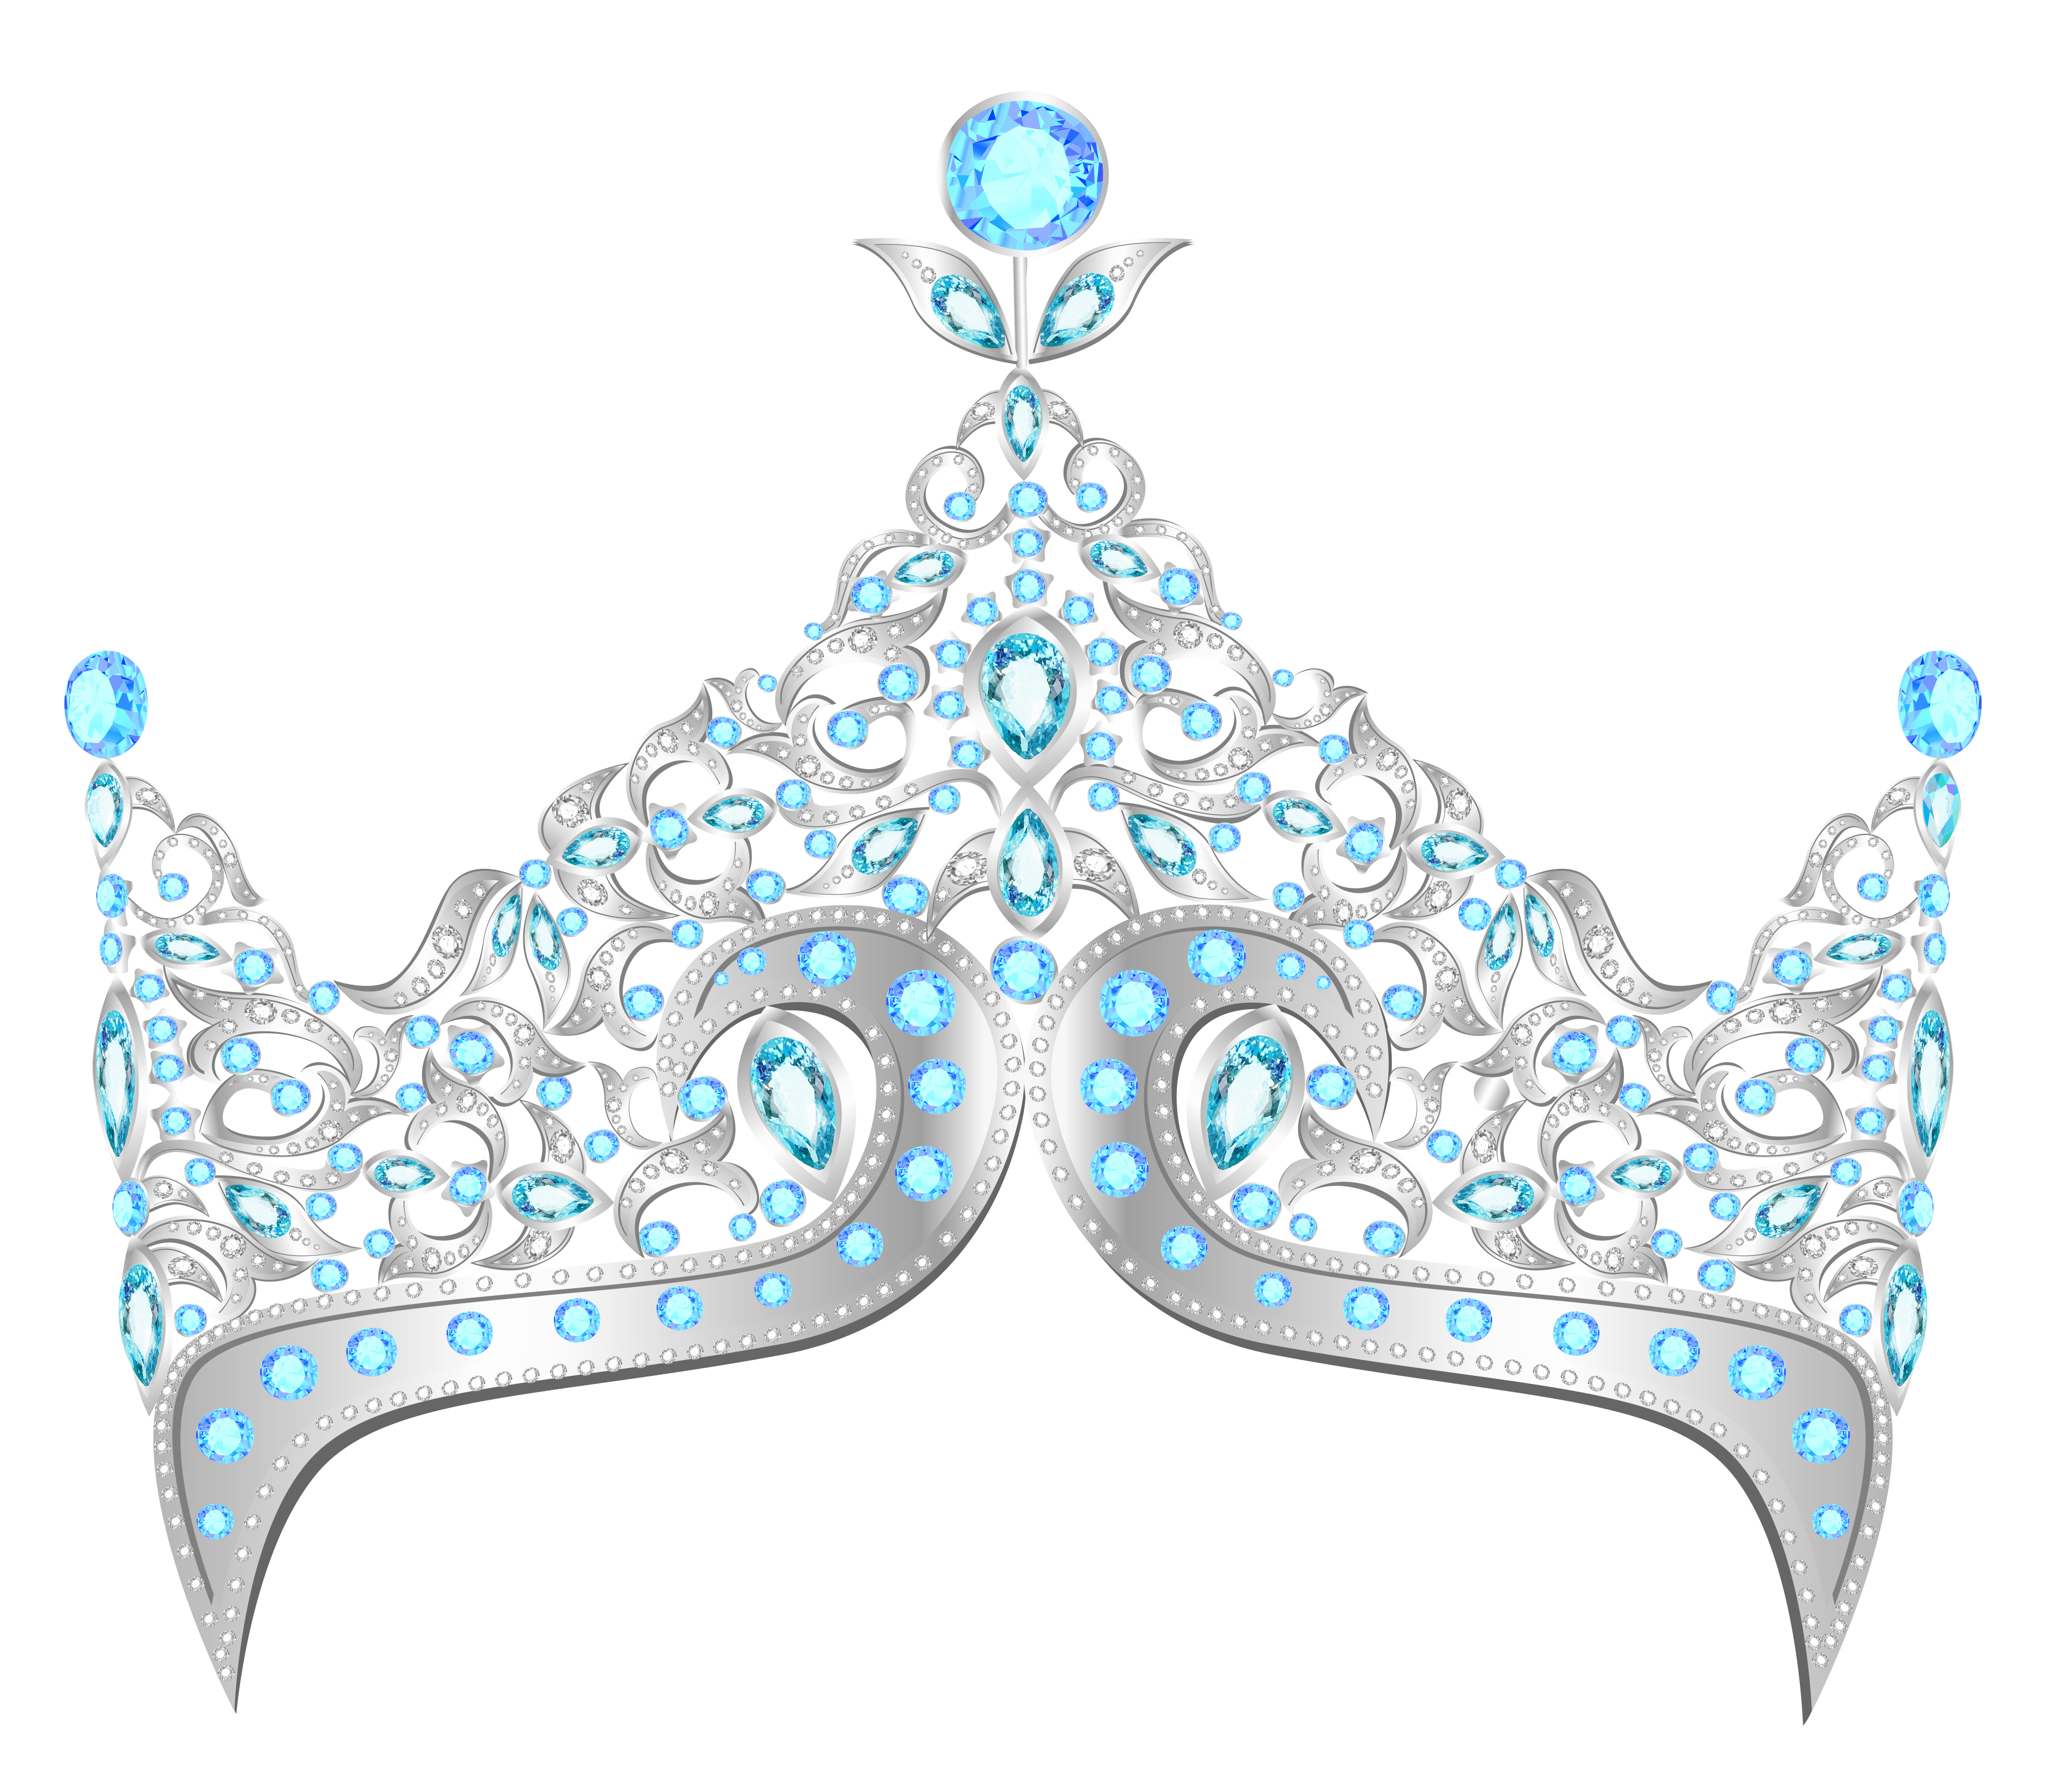 Diamond Crown Png image #29930